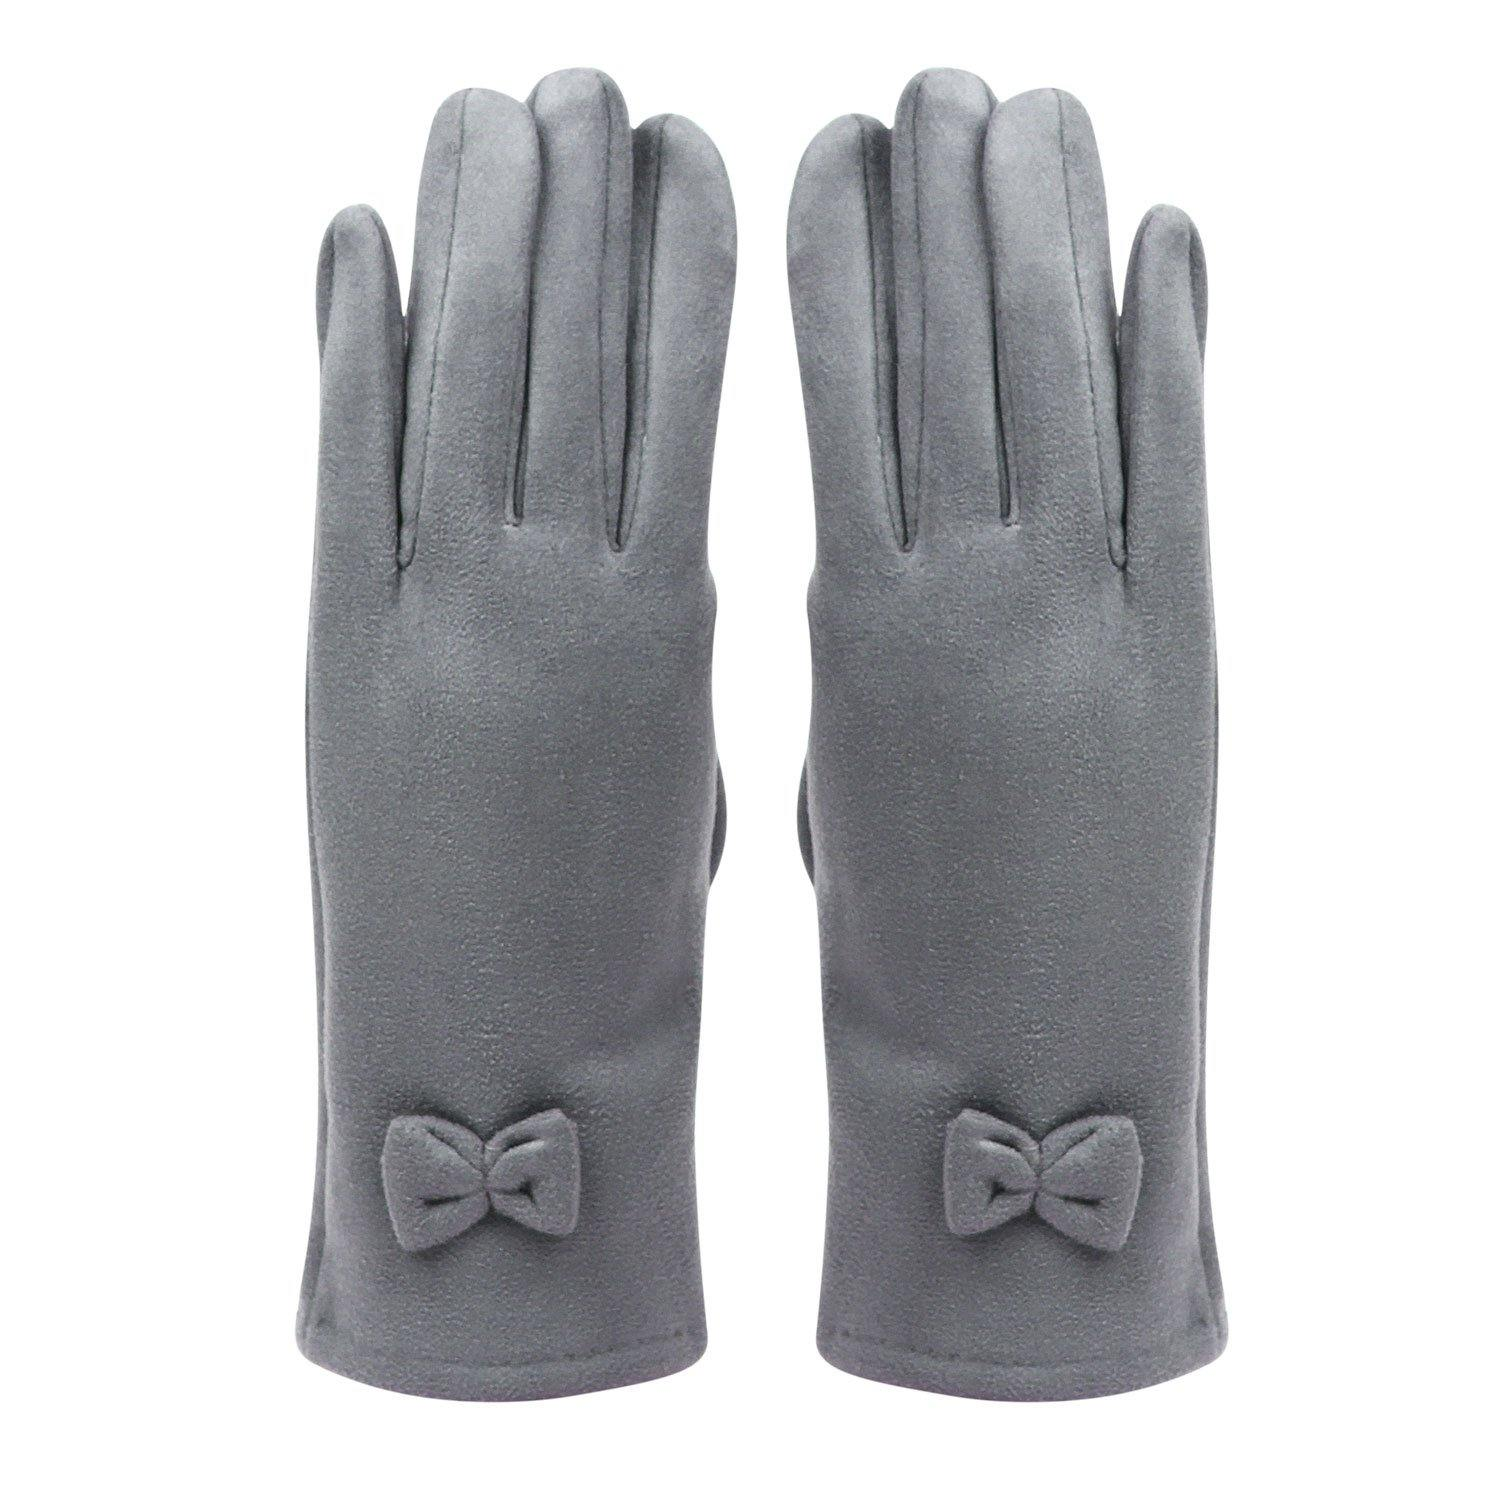 Fashionable Bow Pattern Winter Gloves for Women- Light Grey - Bonjour Group